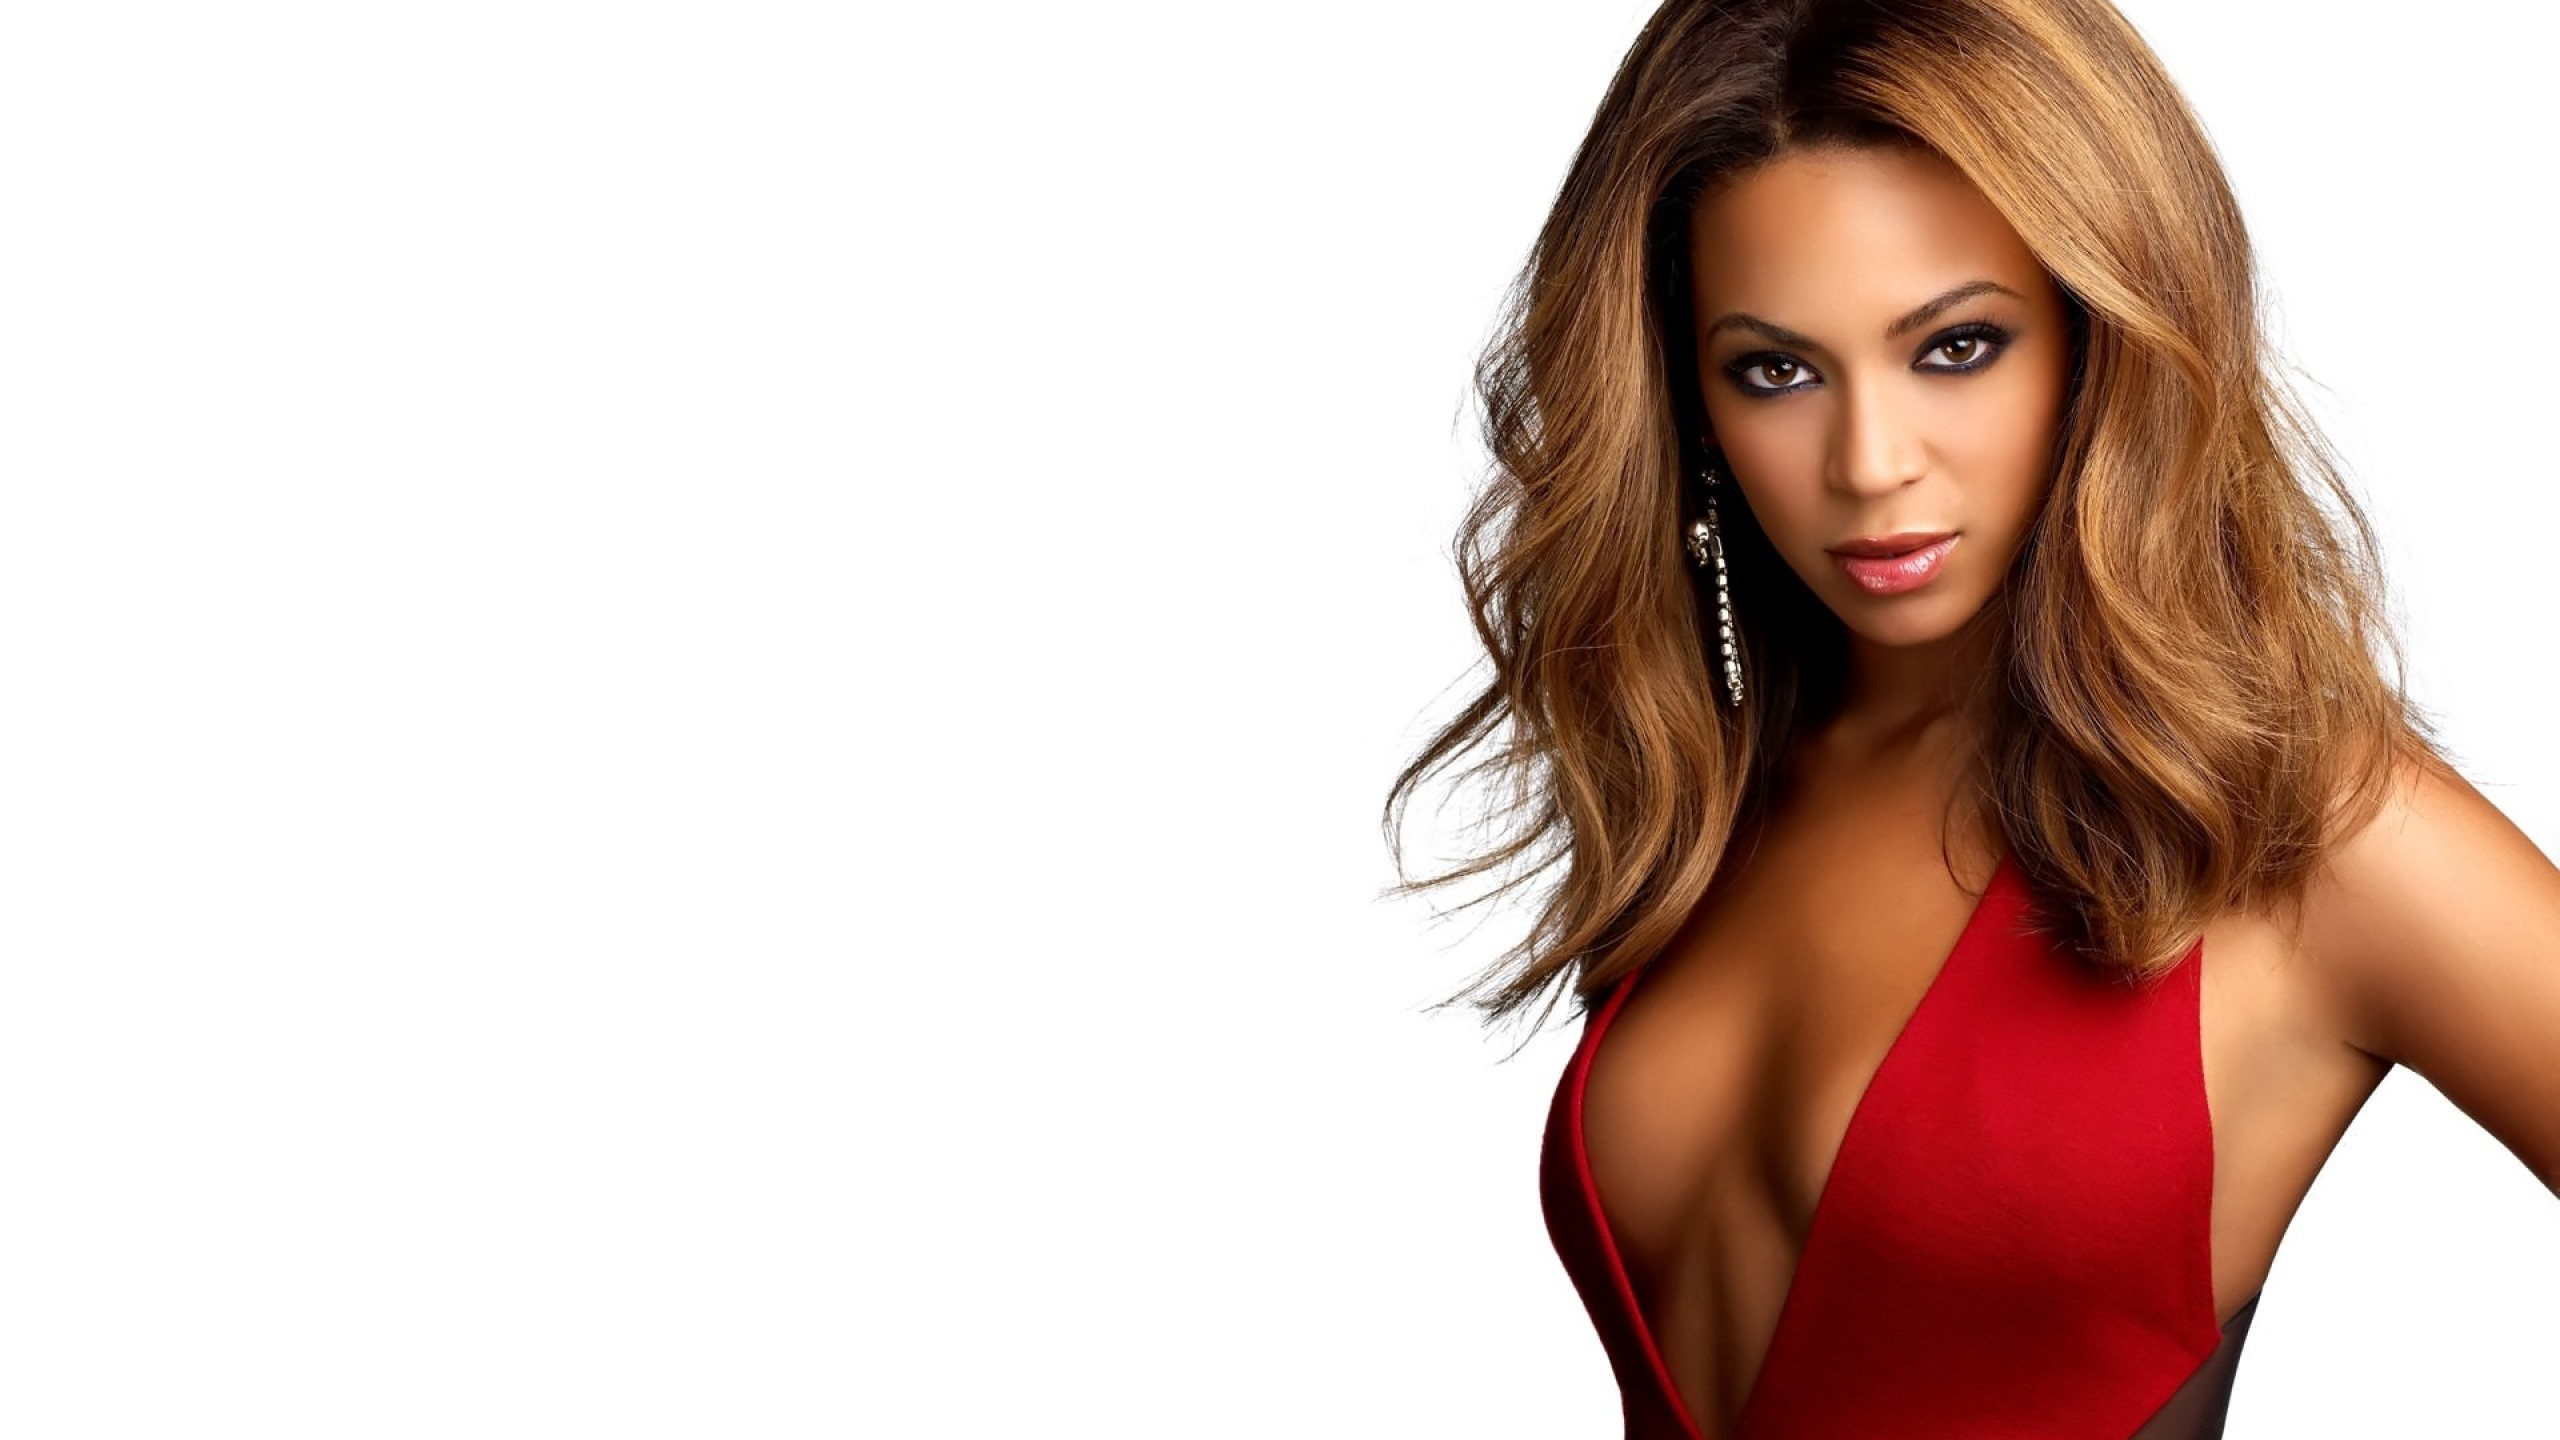 Beyonce Knowles 4k Hd Wallpaper for Desktop and Mobiles